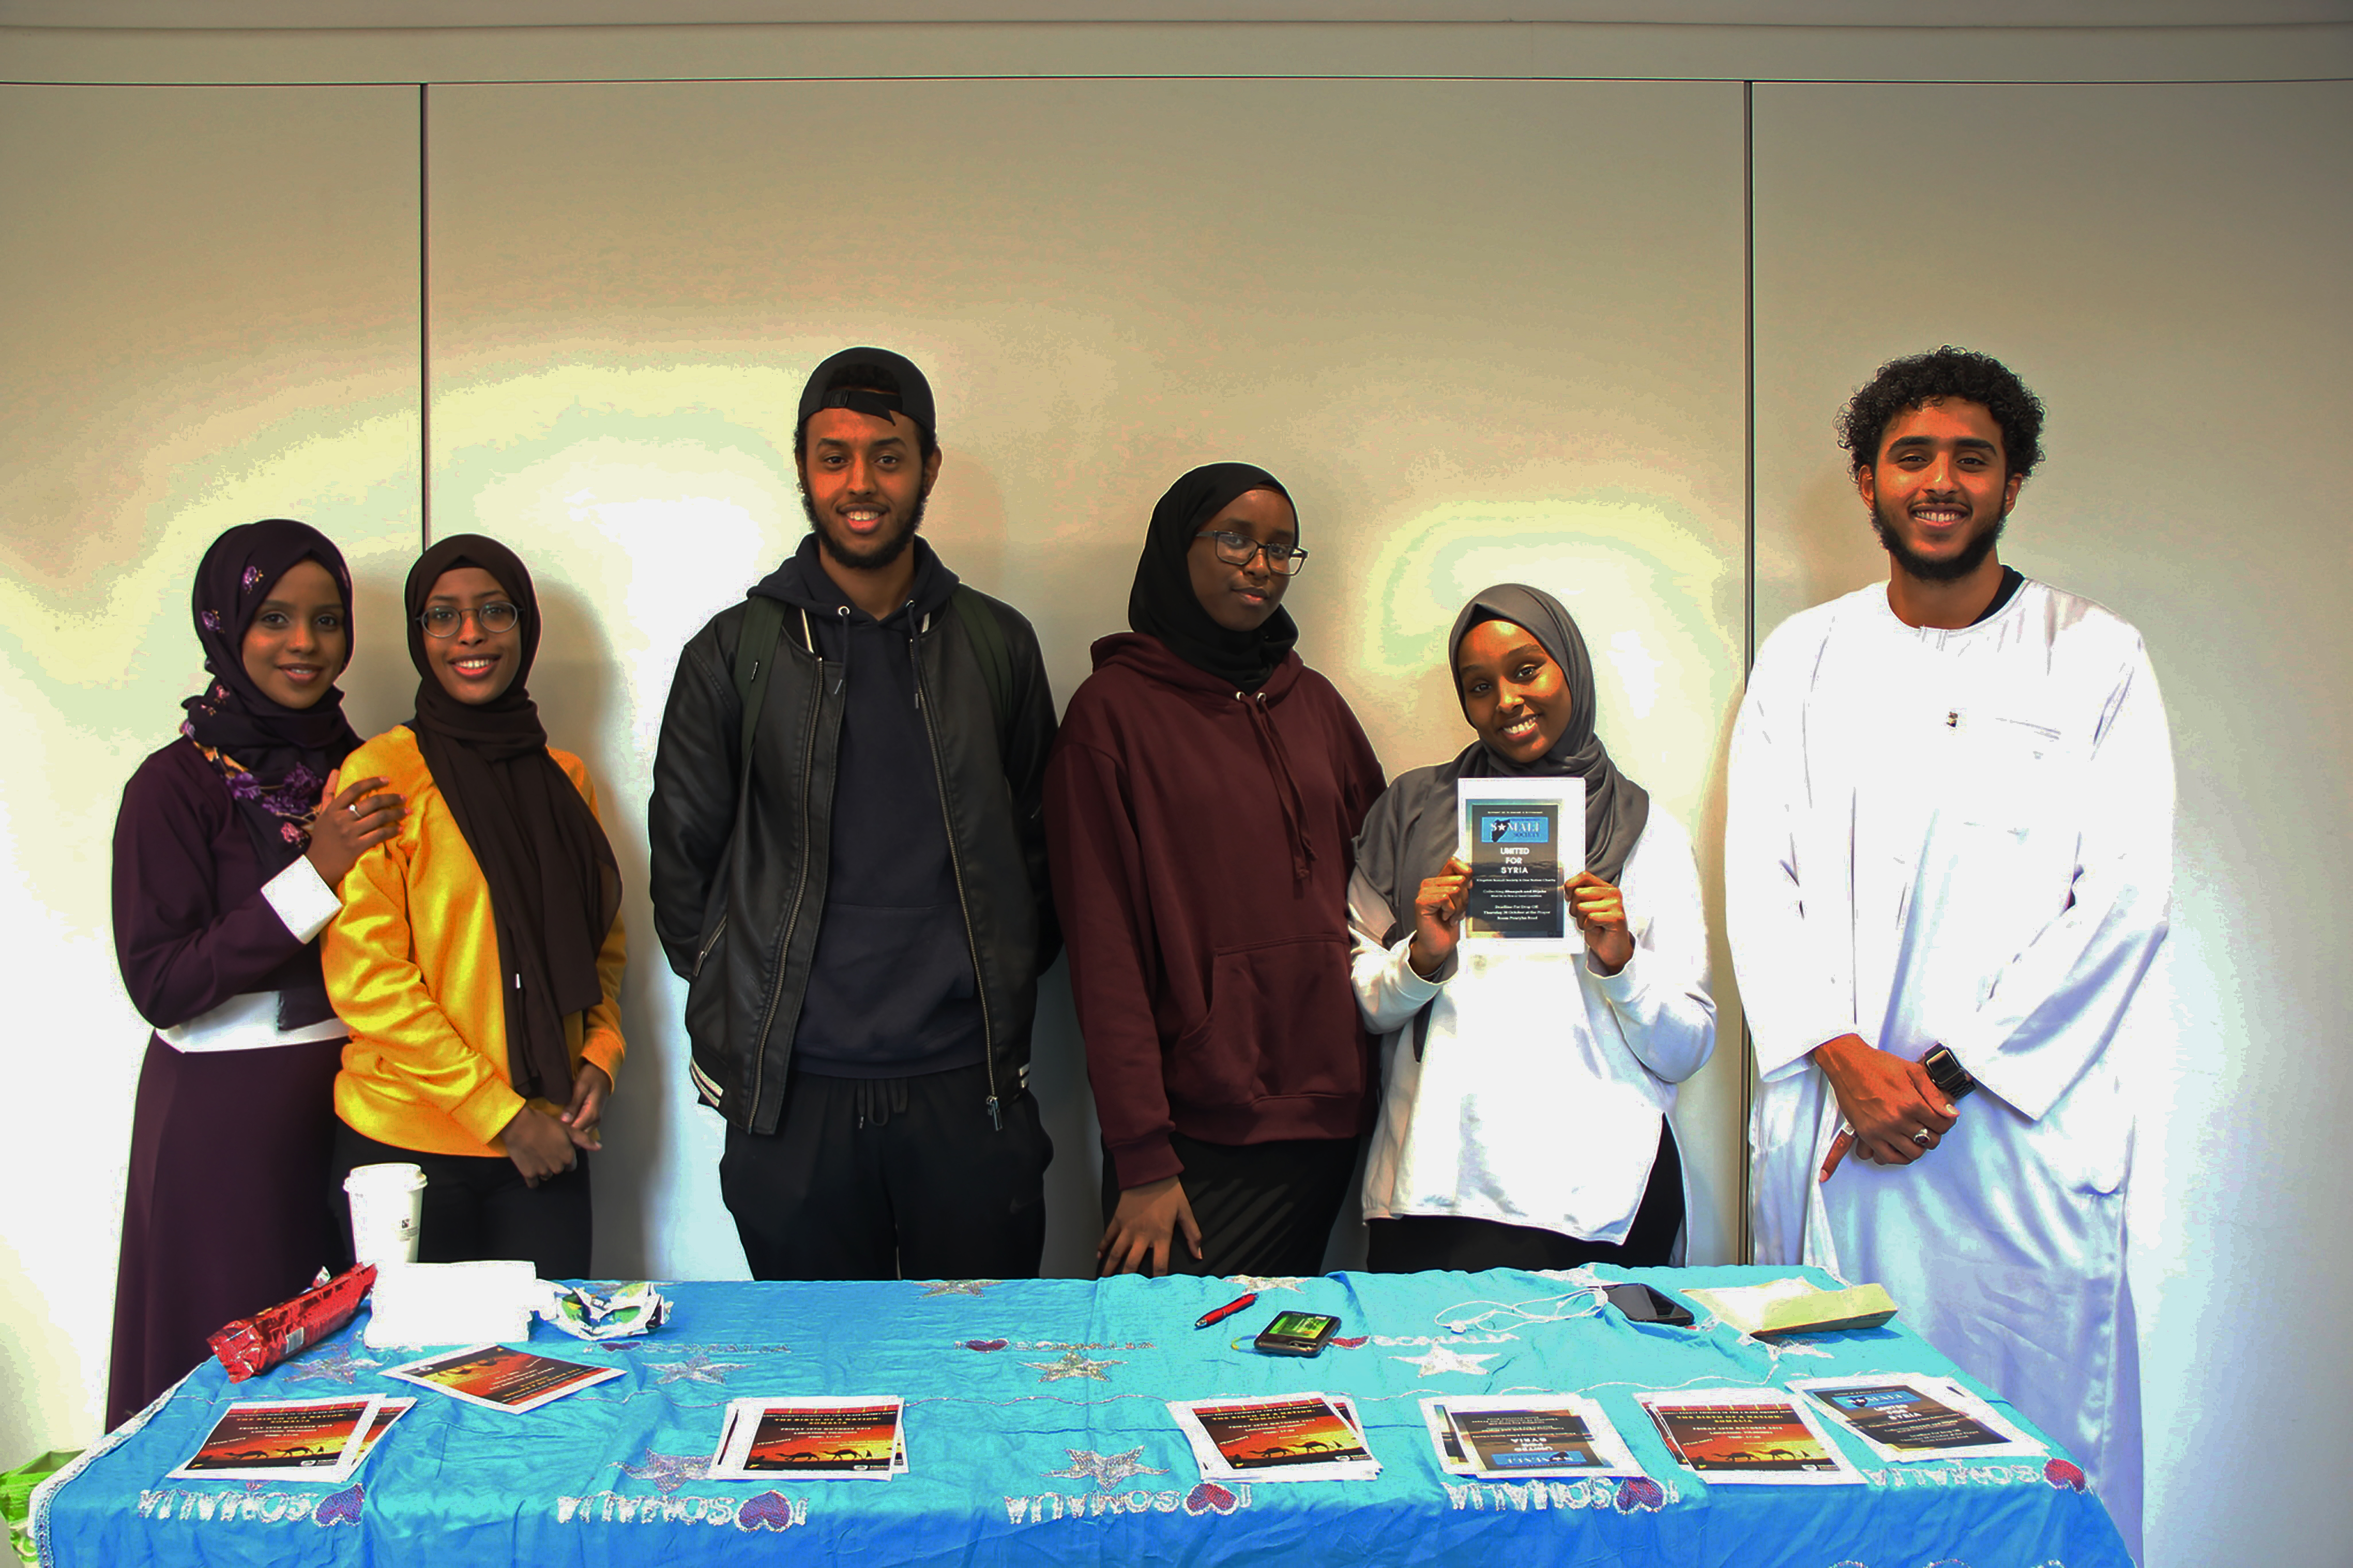 KU Somali Society collects hijabs and abayas for women in Syria